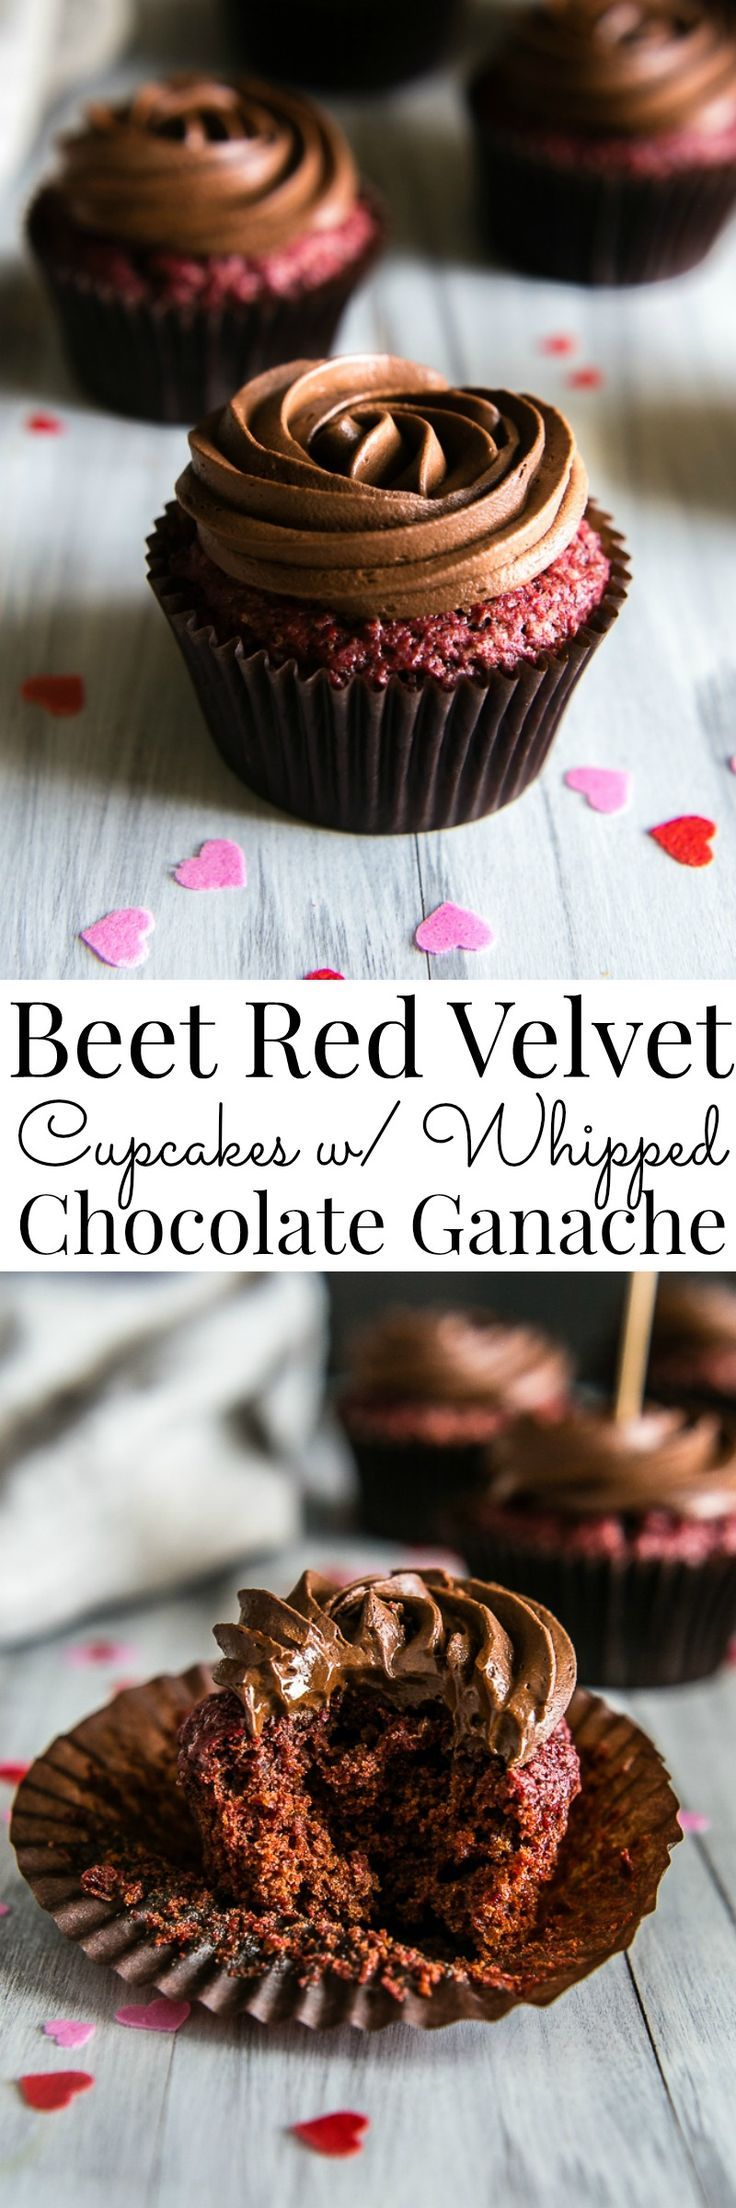 Vegan cupcakes made with beets and no synthetic dye to bring out the most beautiful magenta color on these delightful cupcakes!   Vanilla And Bean